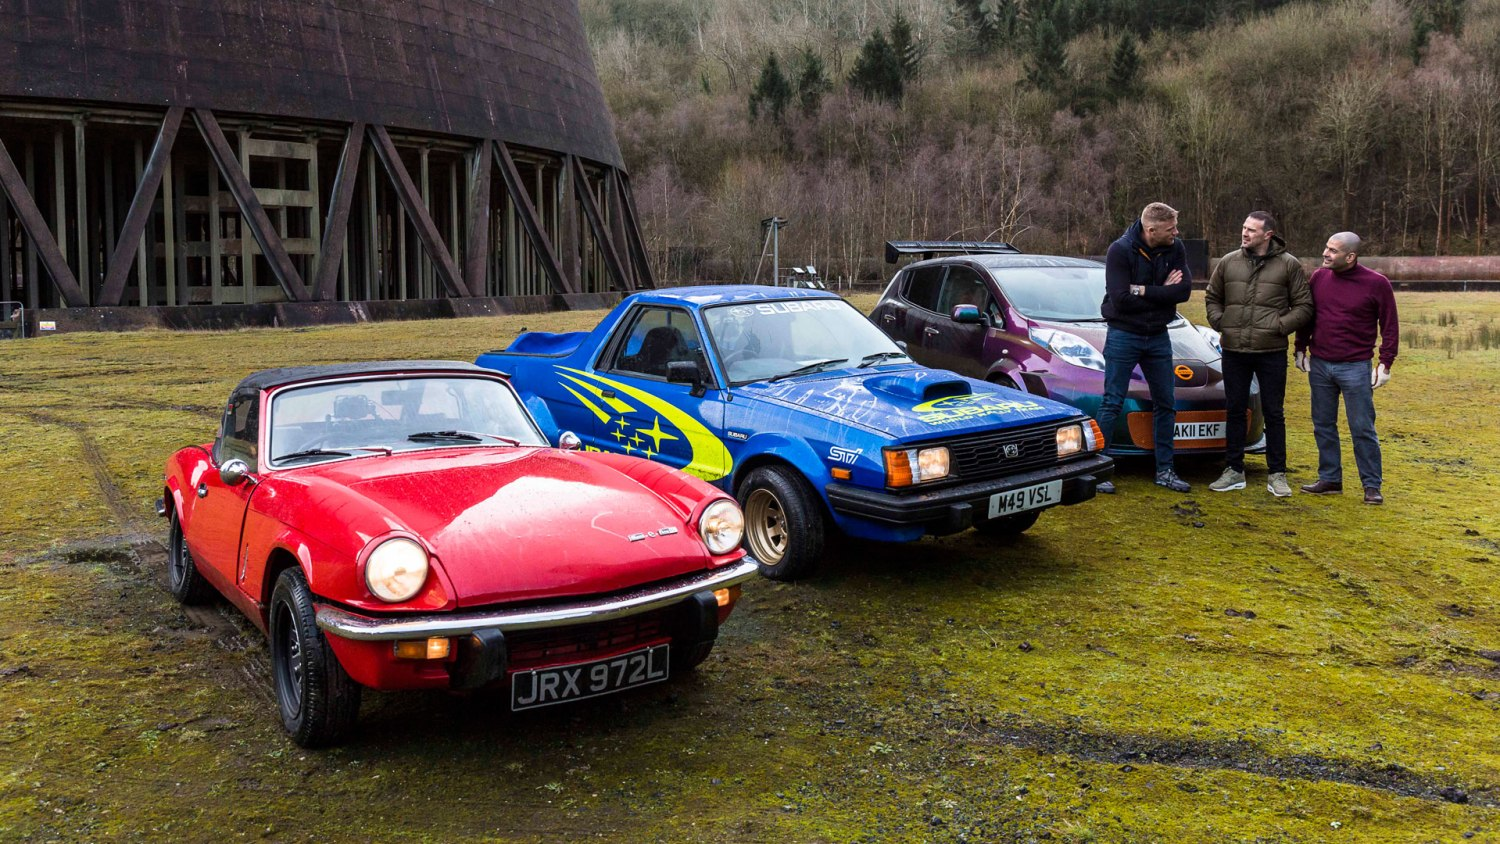 New cars for World of Top Gear display